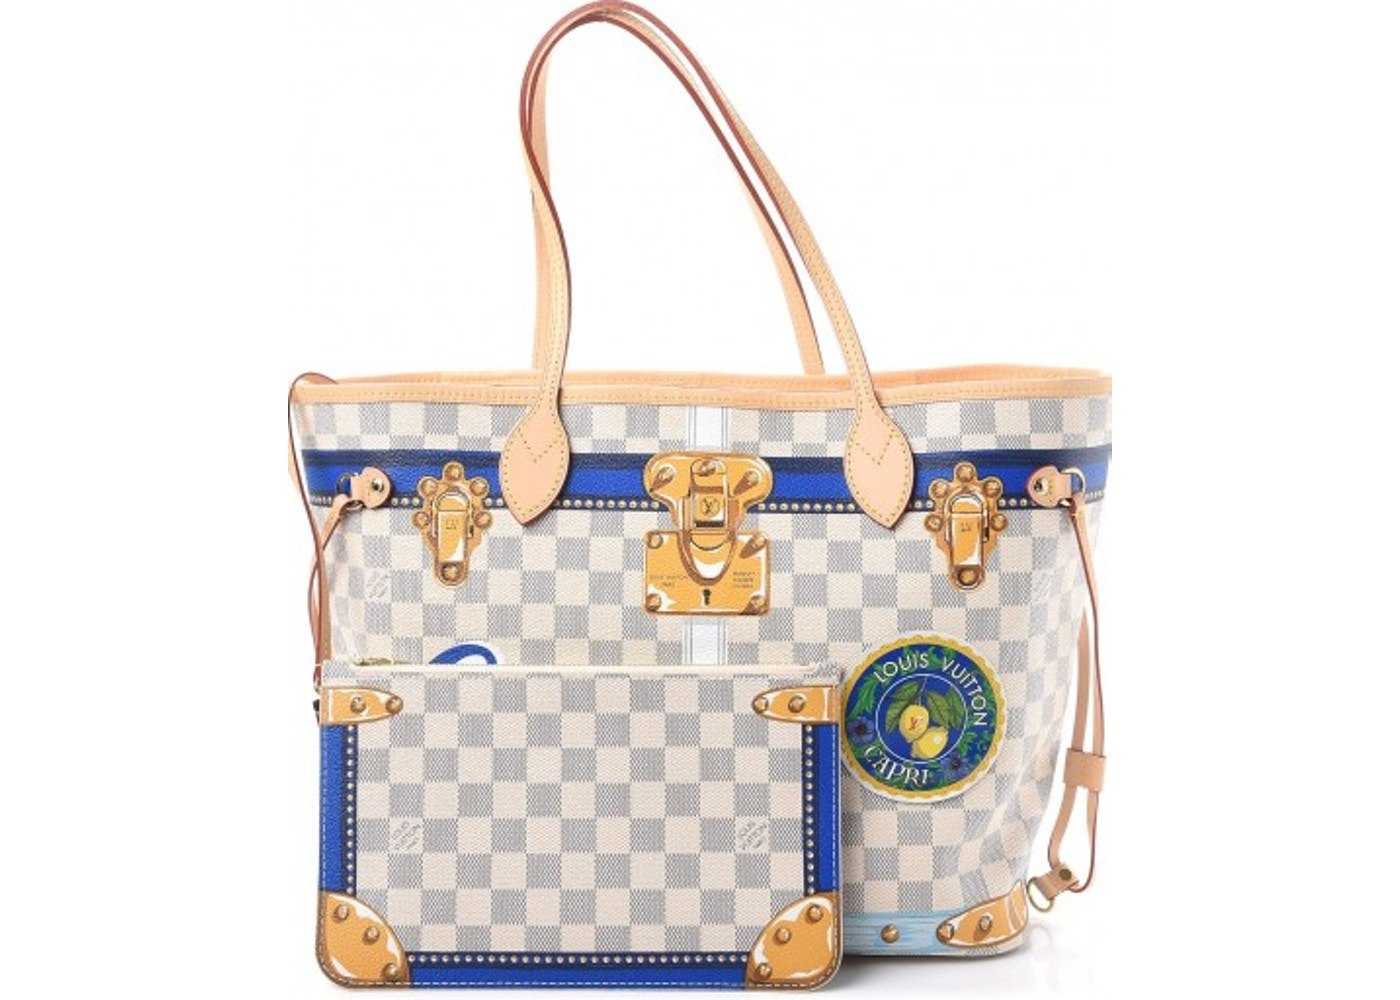 5c287f8ad22c Louis Vuitton Neverfull Summer Trunks Capri Damier Azur With Accessories MM  White Blue. Damier Azur With Accessories MM White Blue